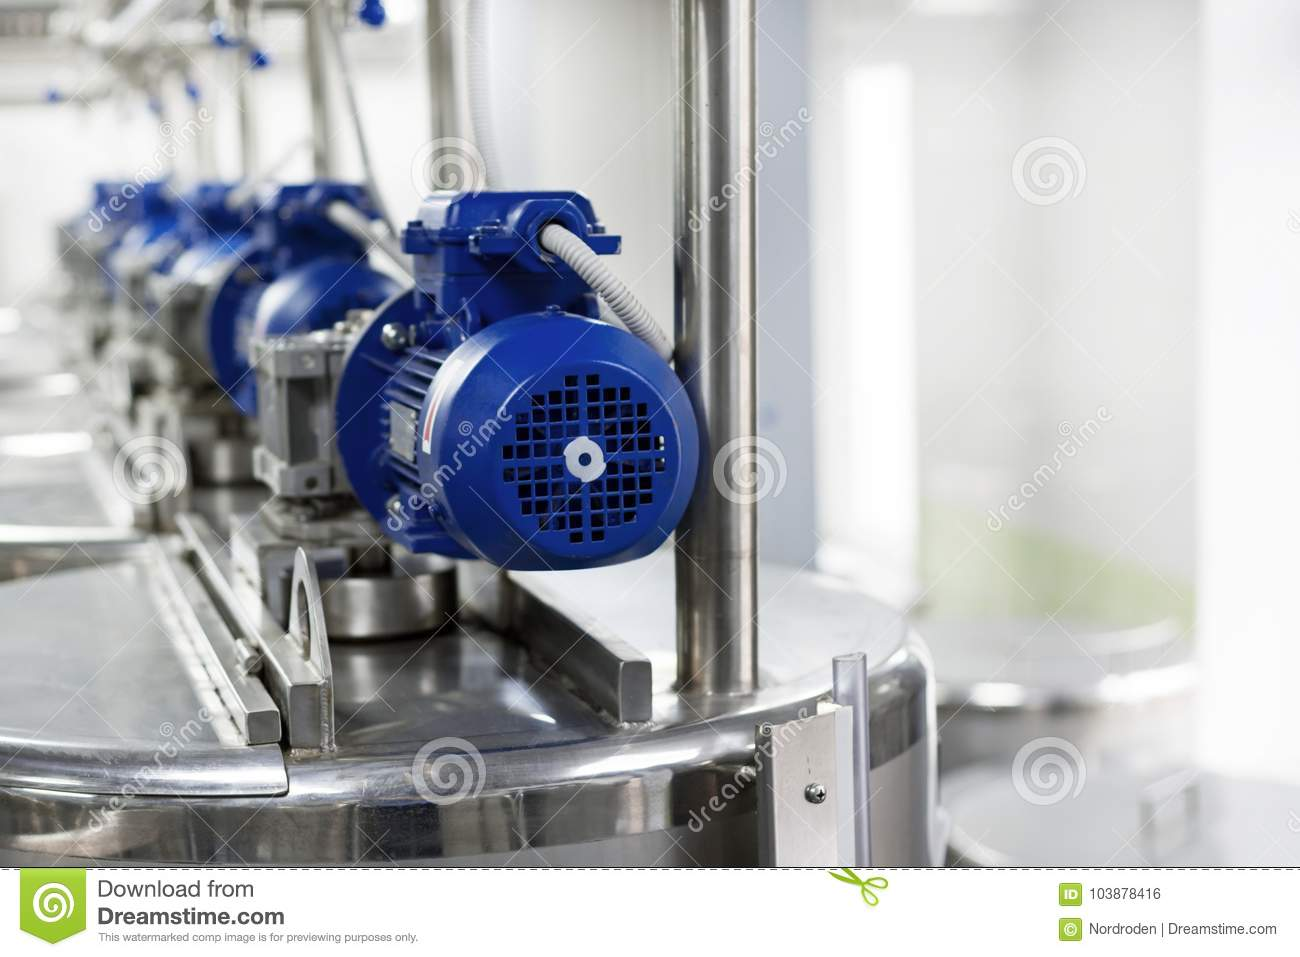 Electric motors on steel tanks for mixing liquids, modern production of alcoholic beverages.